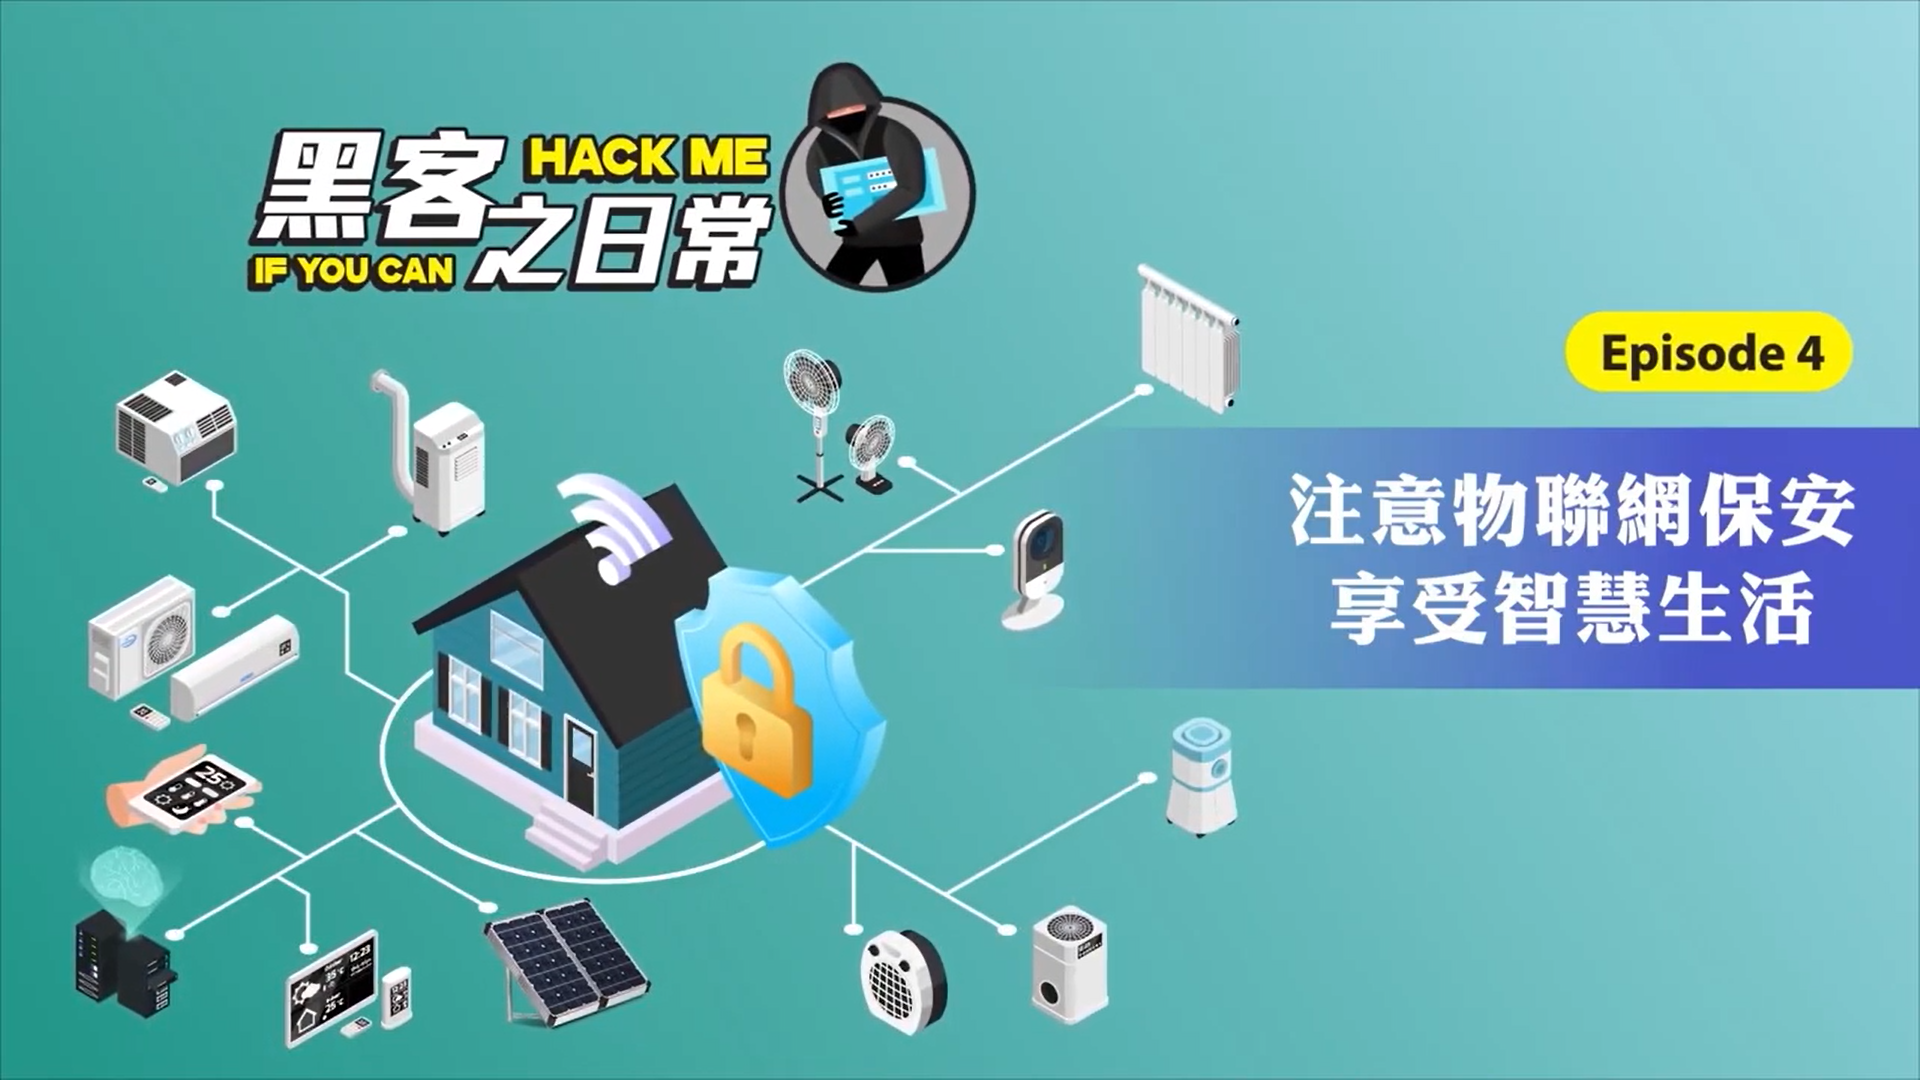 Hack me if you can episode 4【Beware of IoT security to enjoy a safety smart living】